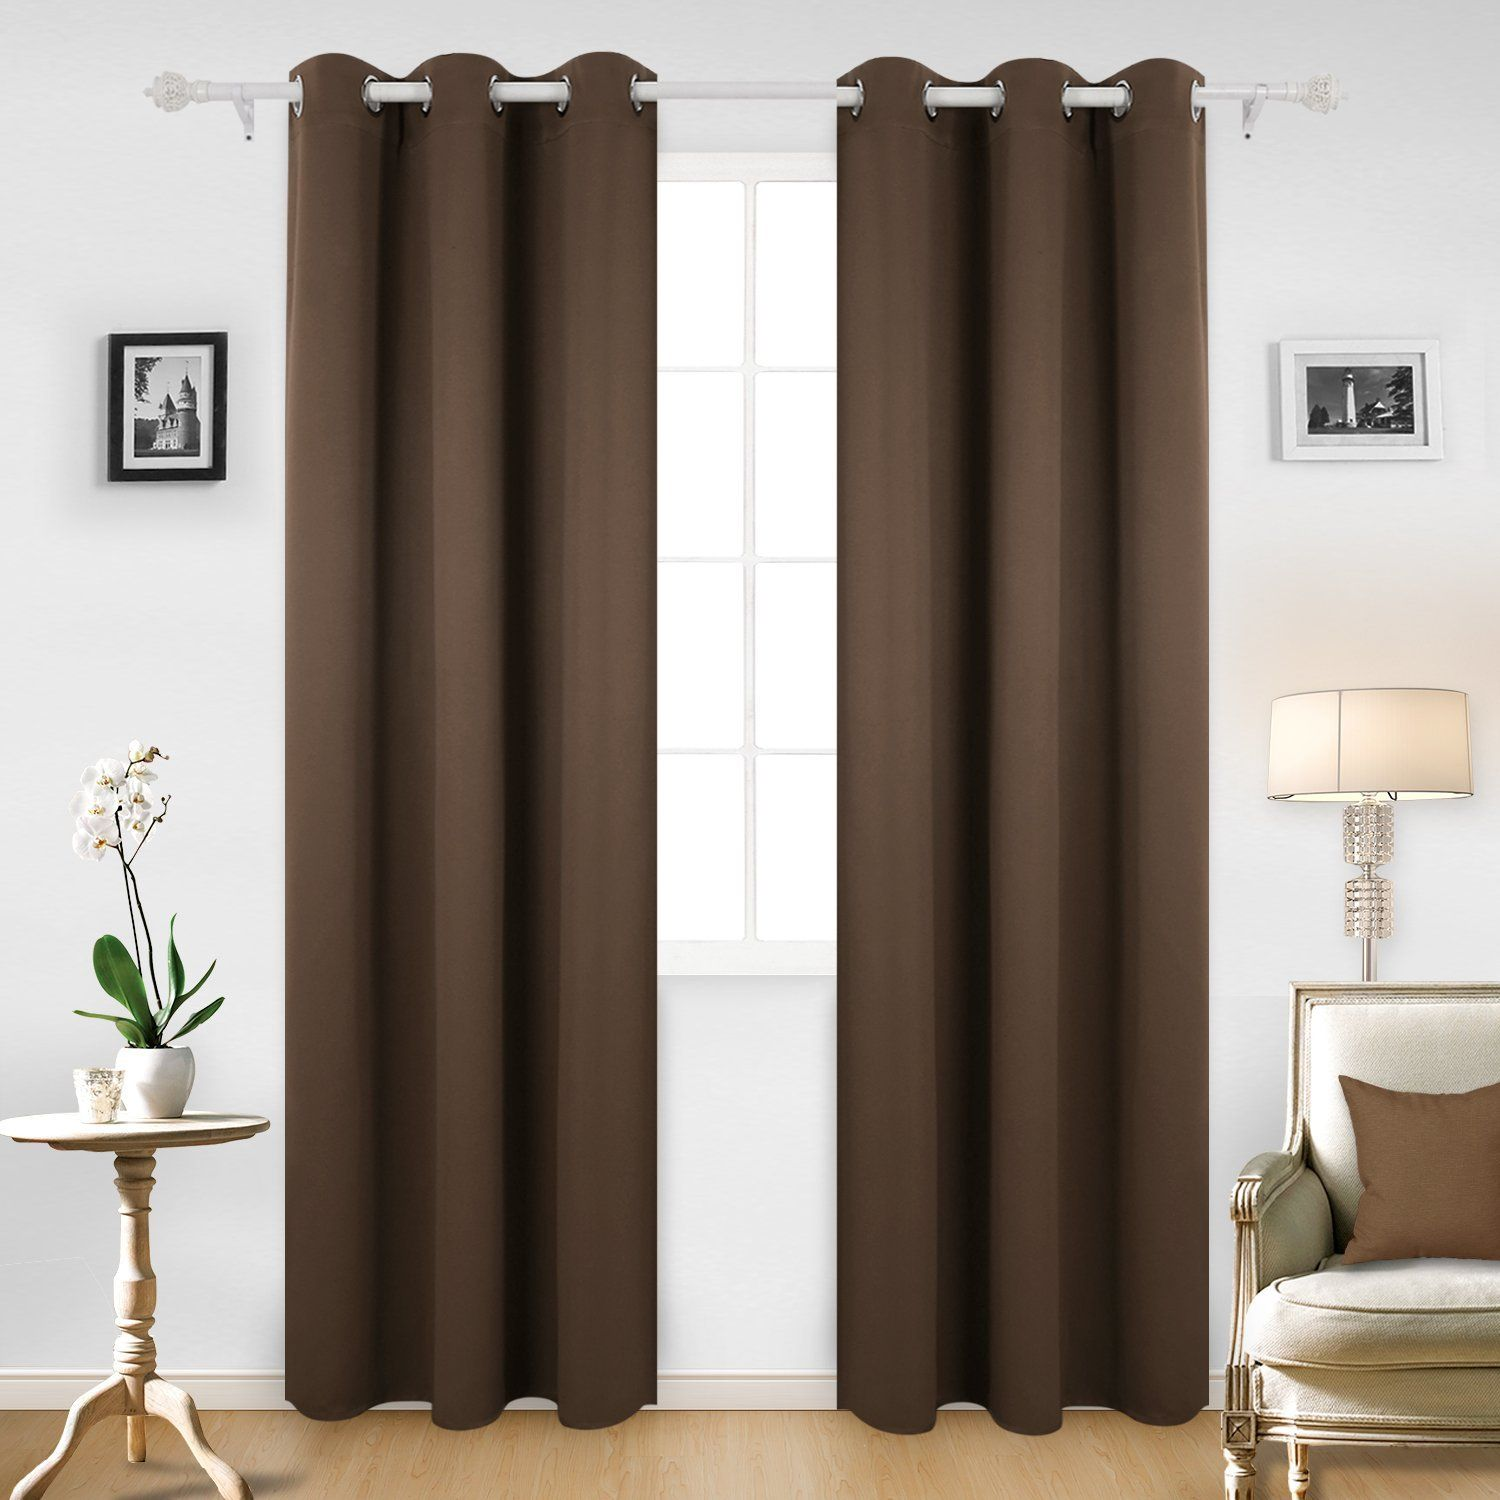 Nursery window ideas  deconovo room darkening thermal insulated blackout grommet window